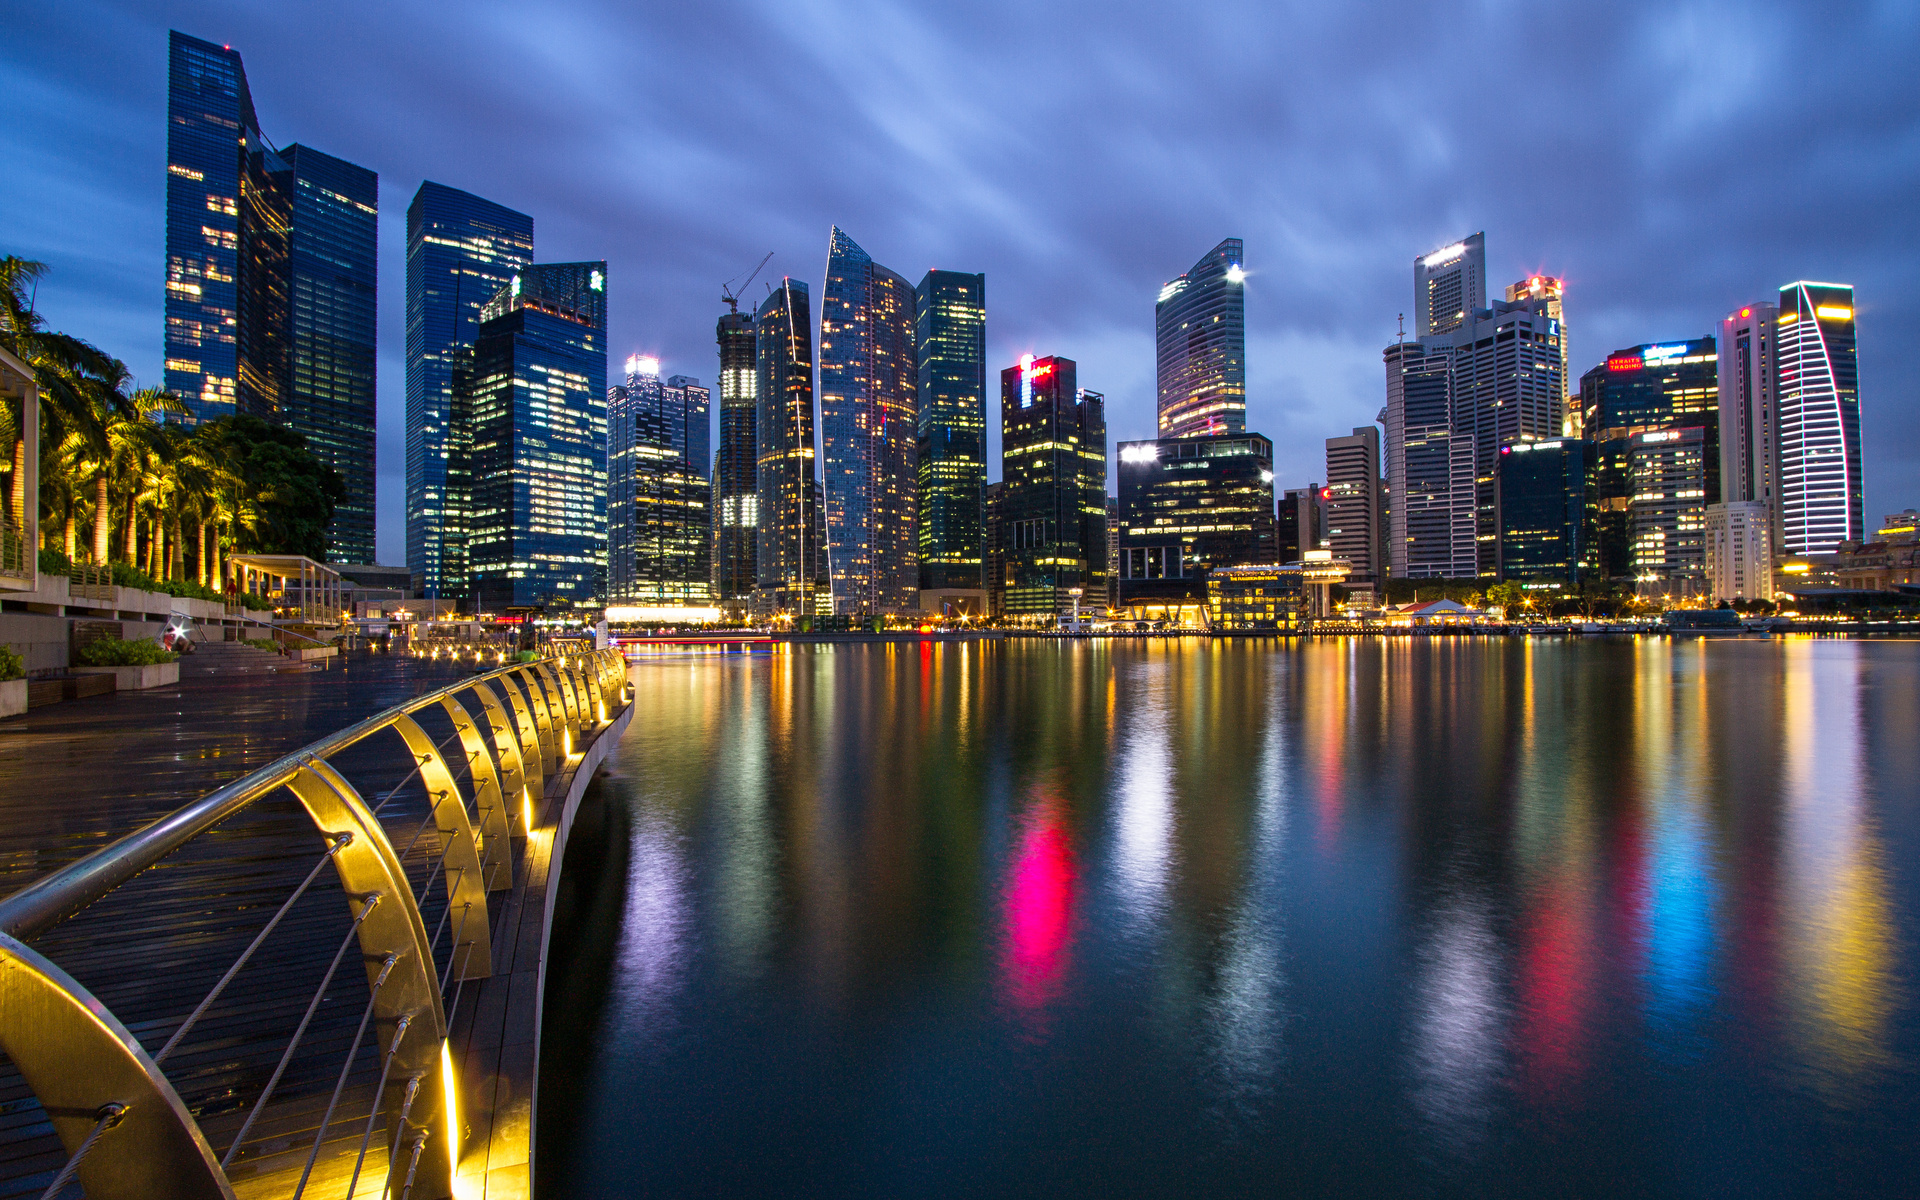 hong kong and singapore Compare and book cheap flights from singapore to chek lap kok (hong kong intl airport) free 24 hour cancellation on most flights.